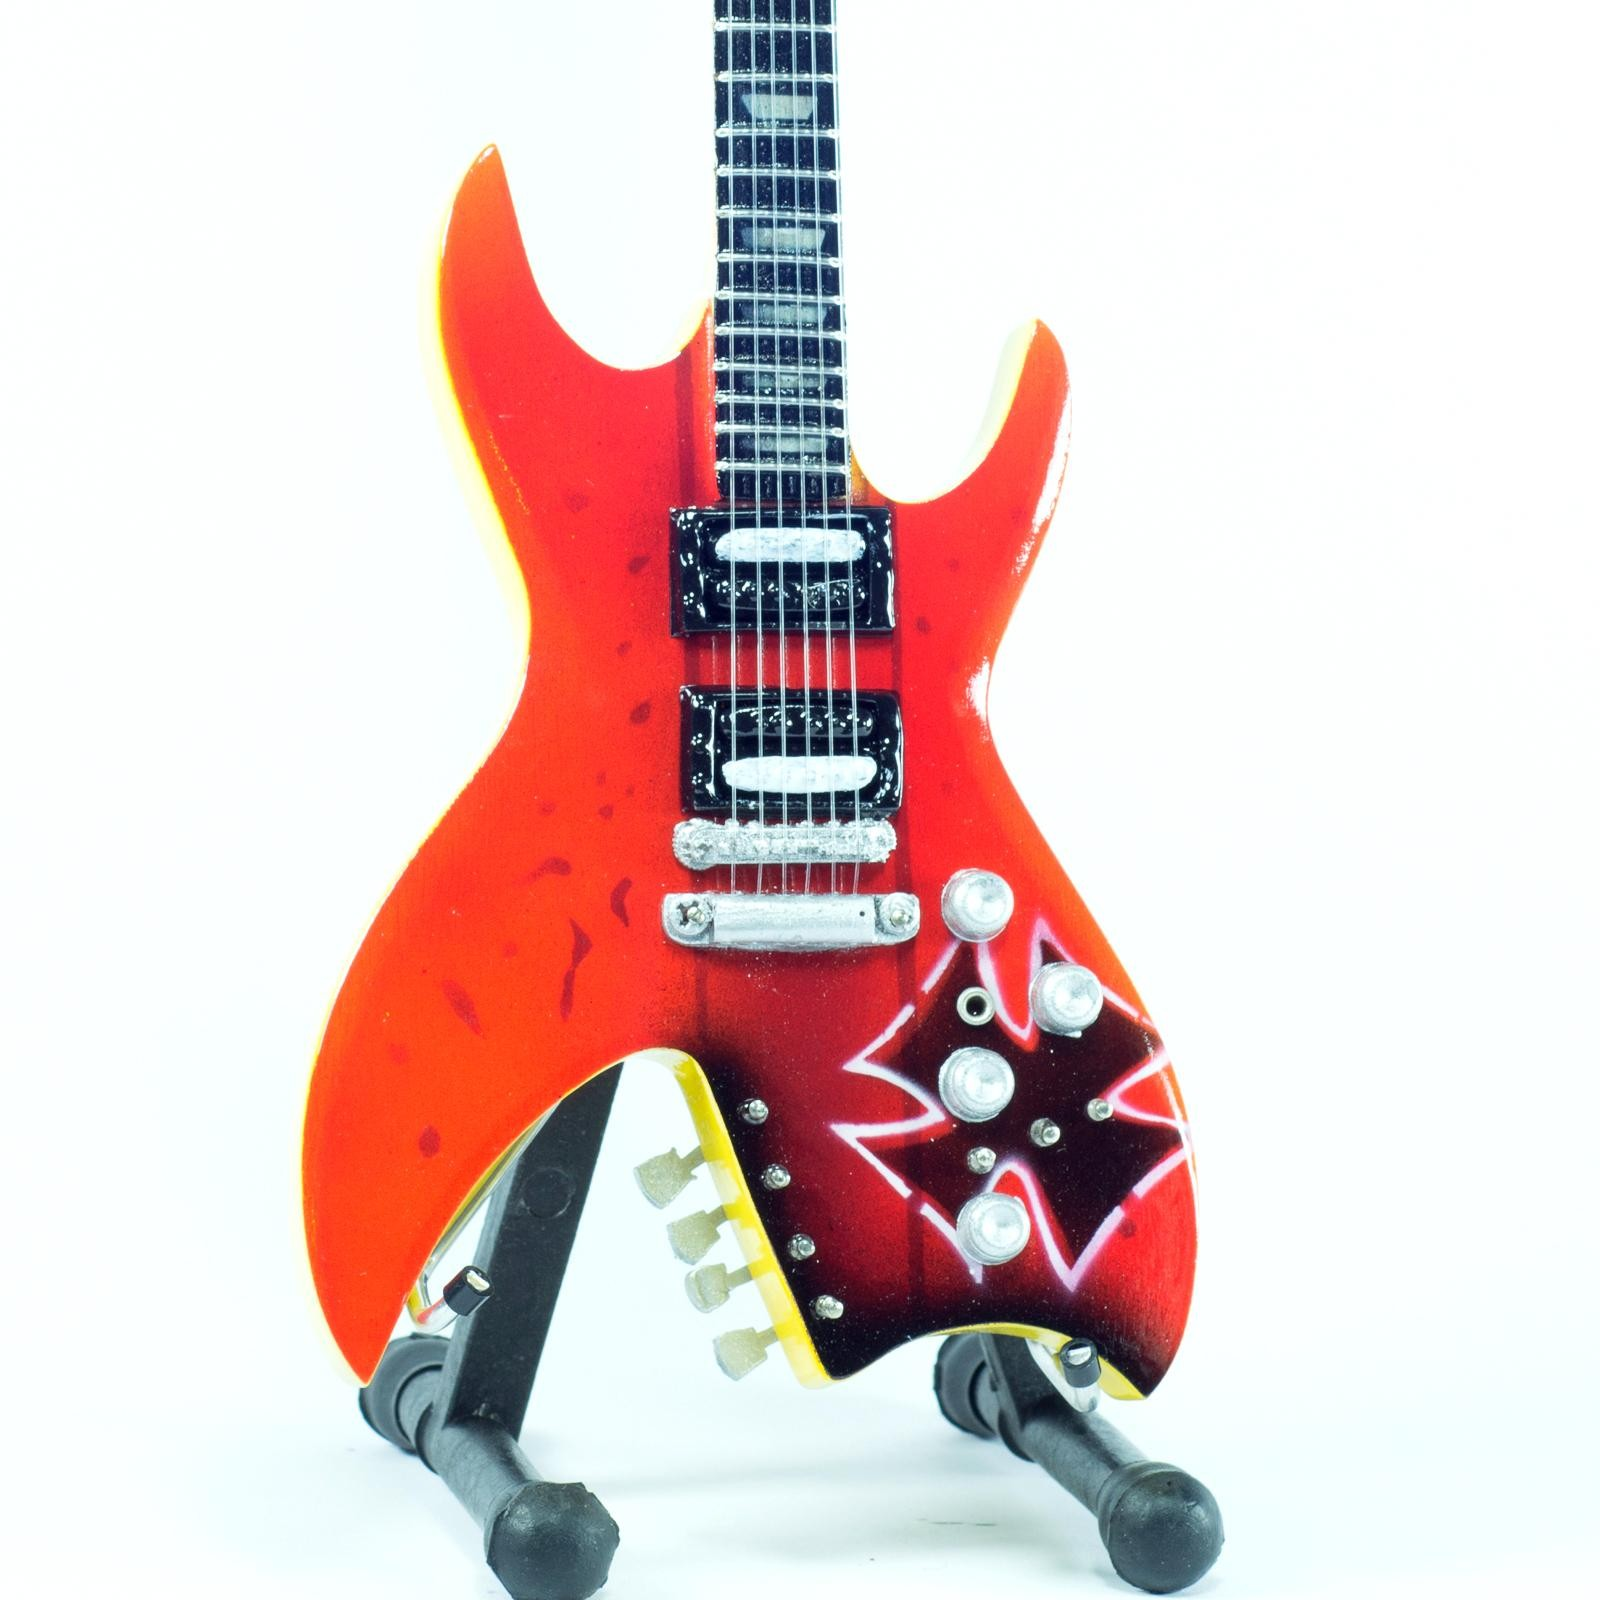 mini-guitarra-de-coleccion-estilo-metallica-james-hetfield-brown-cross